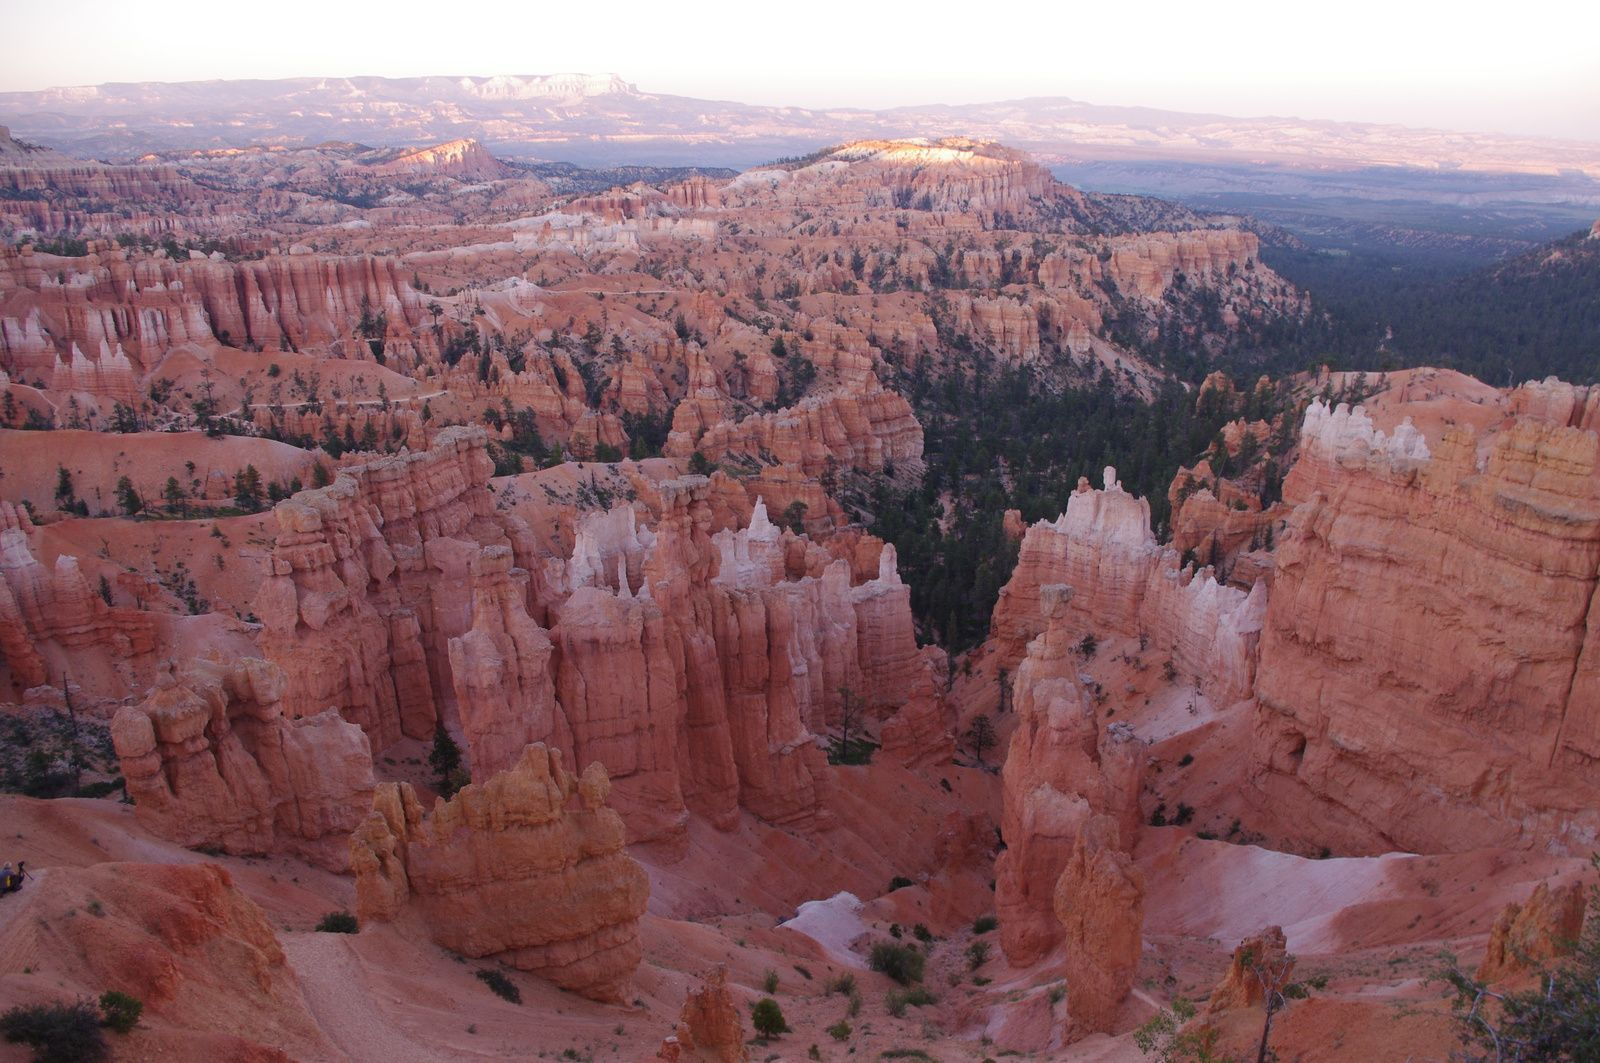 USA Road Trip - Jour 17/25 - Byway 12 - Bryce Canyon National Park